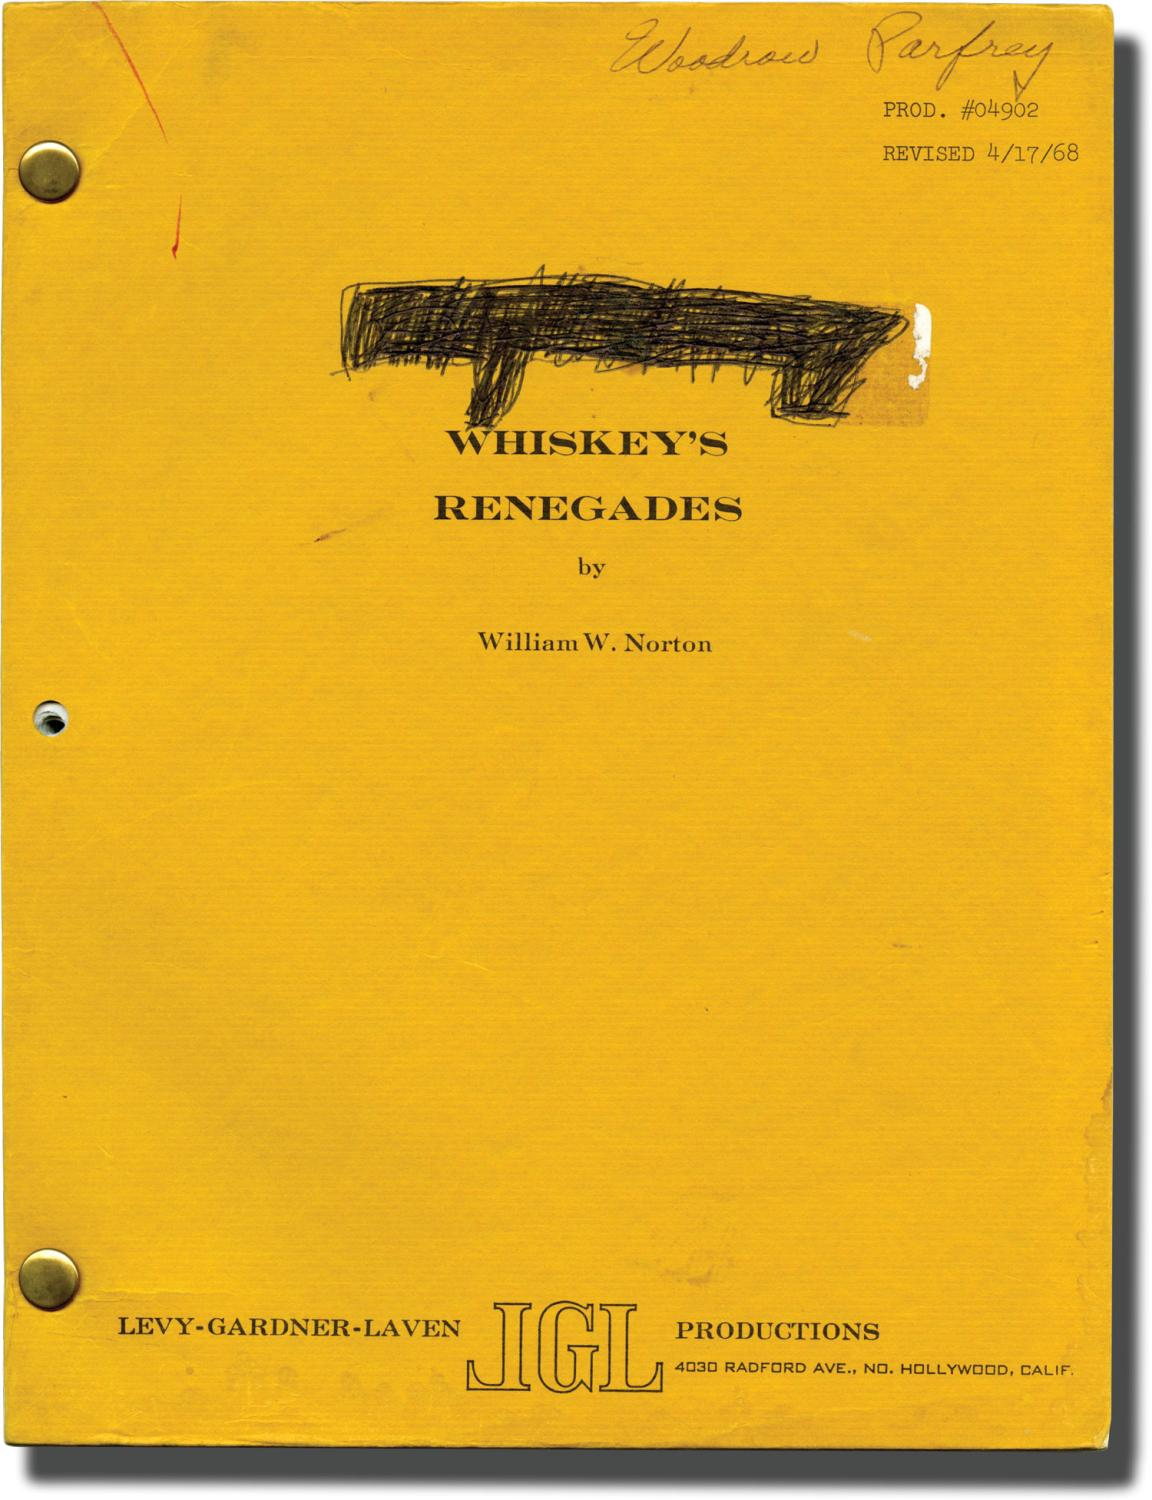 Sam Whiskey [Whiskey's Renegades] (Original screenplay for the 1969 film) Laven, Arnold (director, producer); William W. Norton (screenwriter); Burt